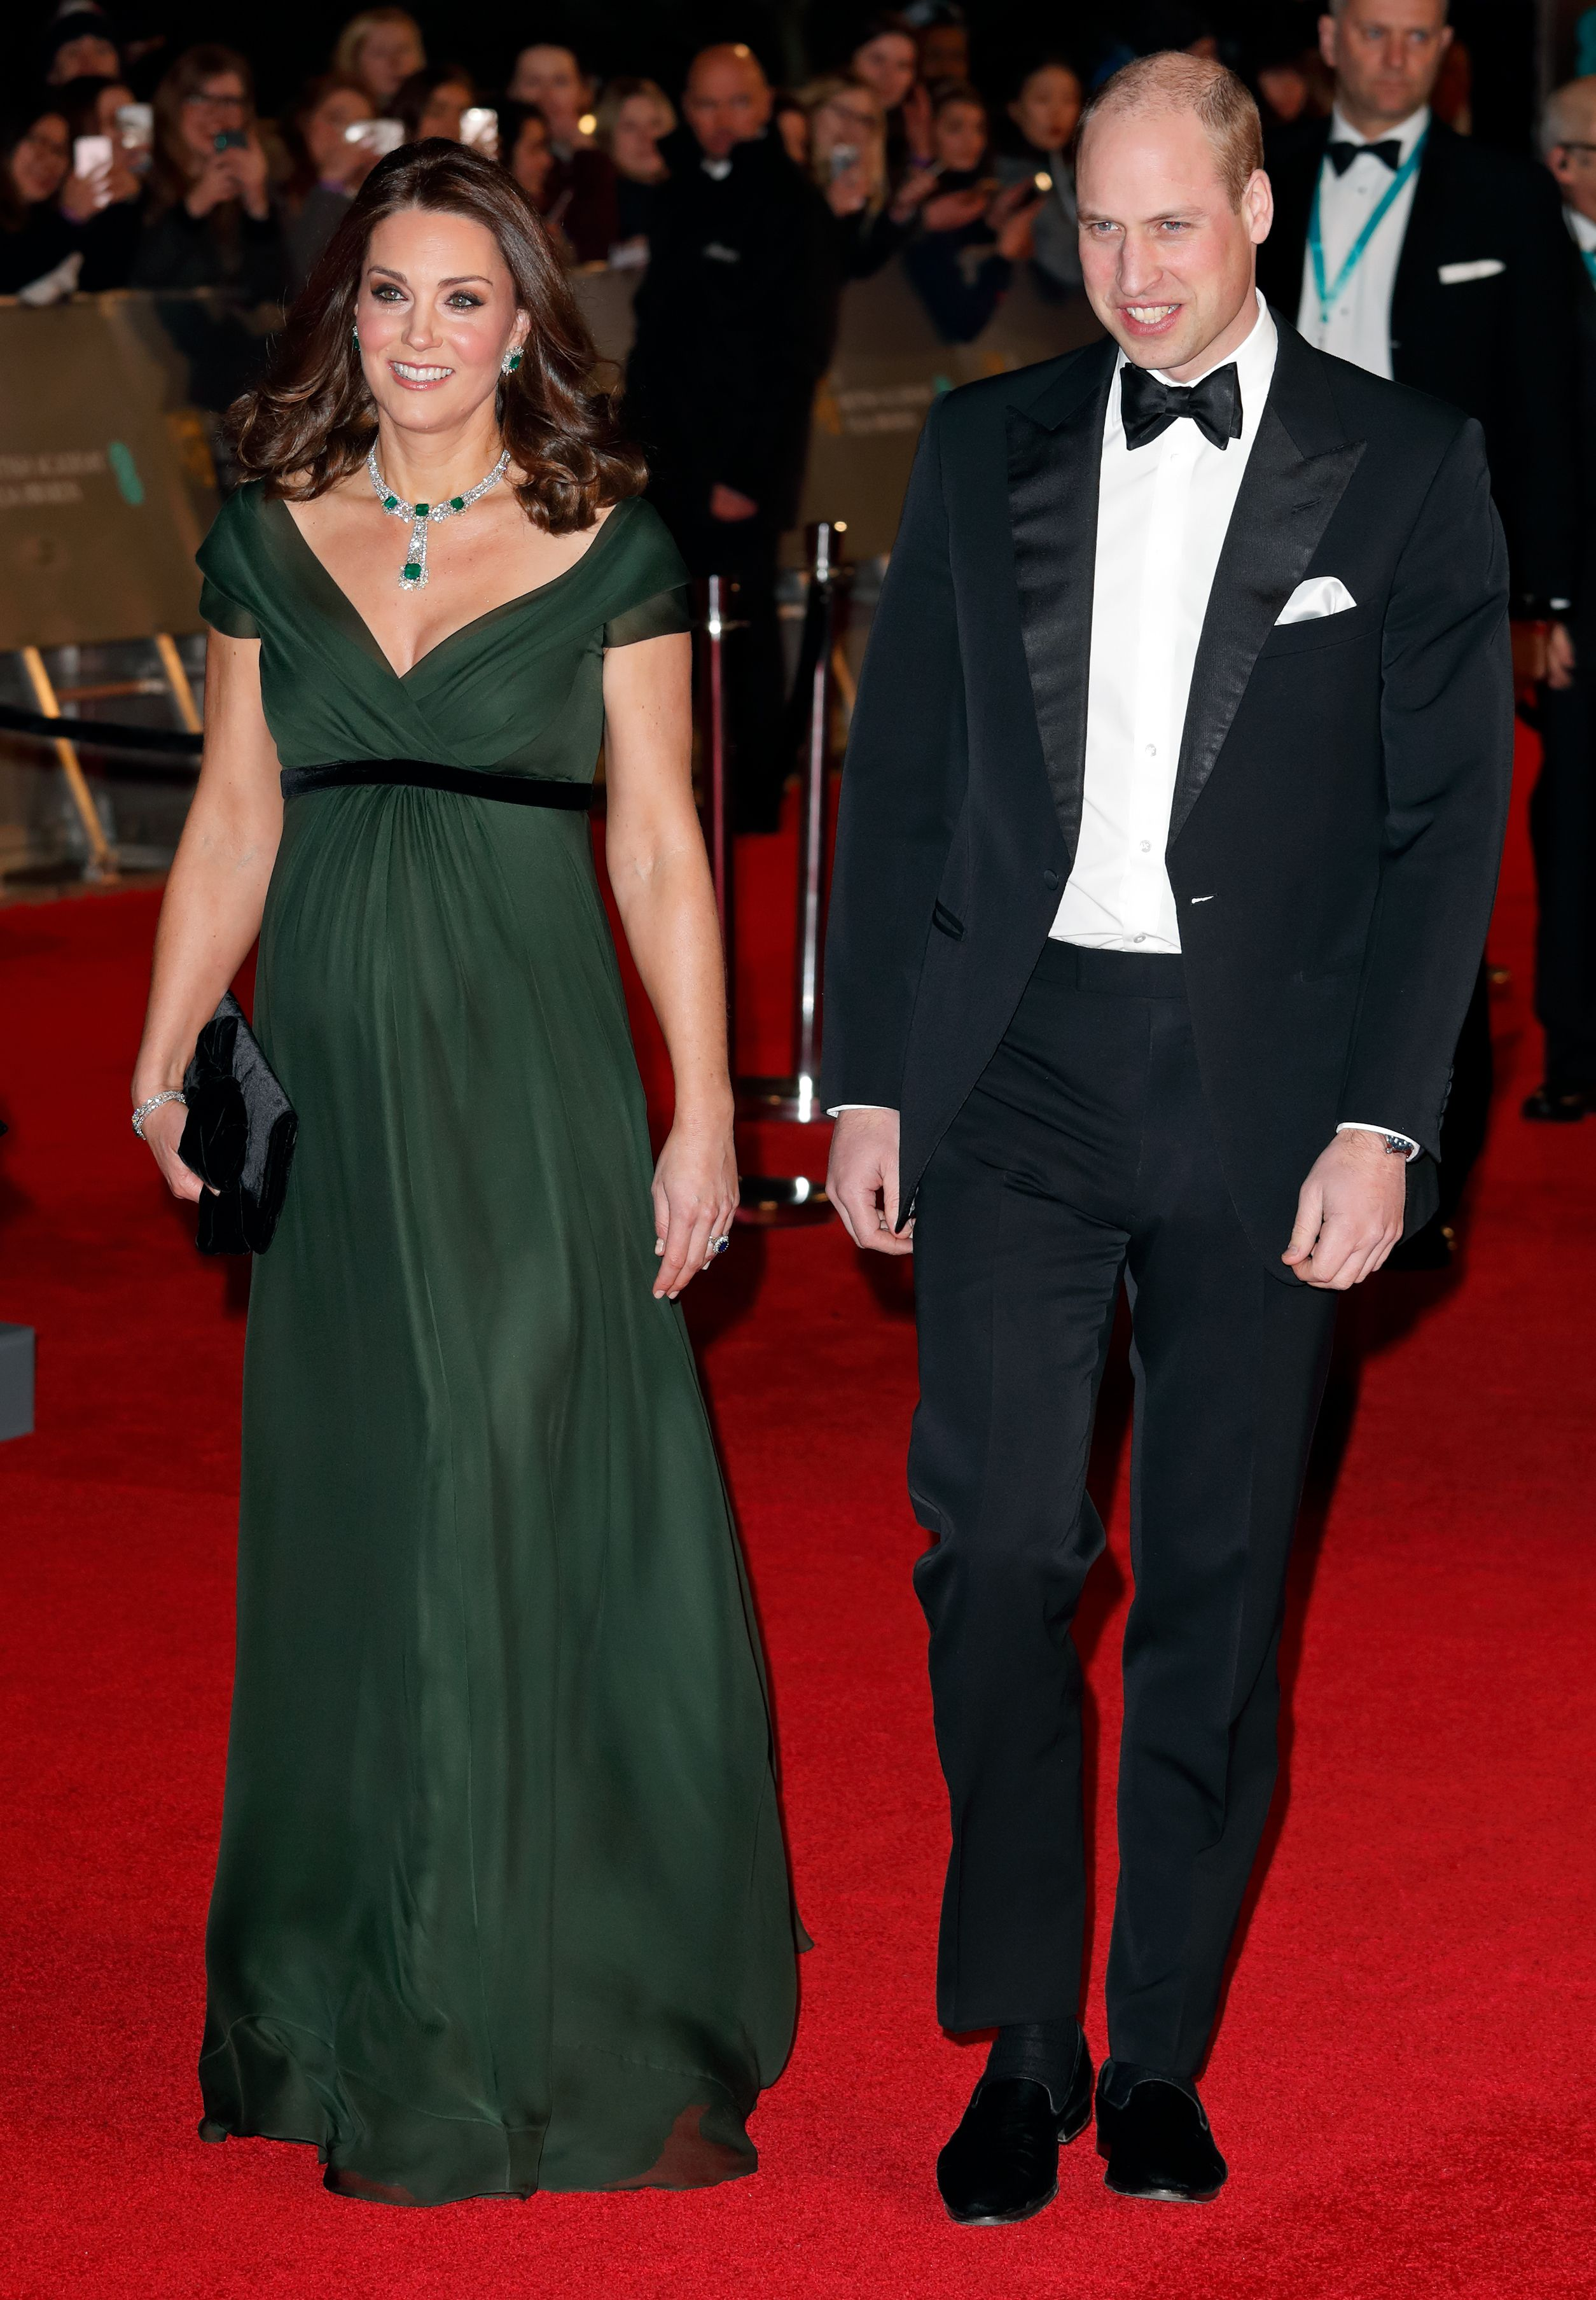 Middleton stunned in a forest green Jenny Packham gown with an empire waist, providing a masterclass in maternity dressing for a black tie occasion.